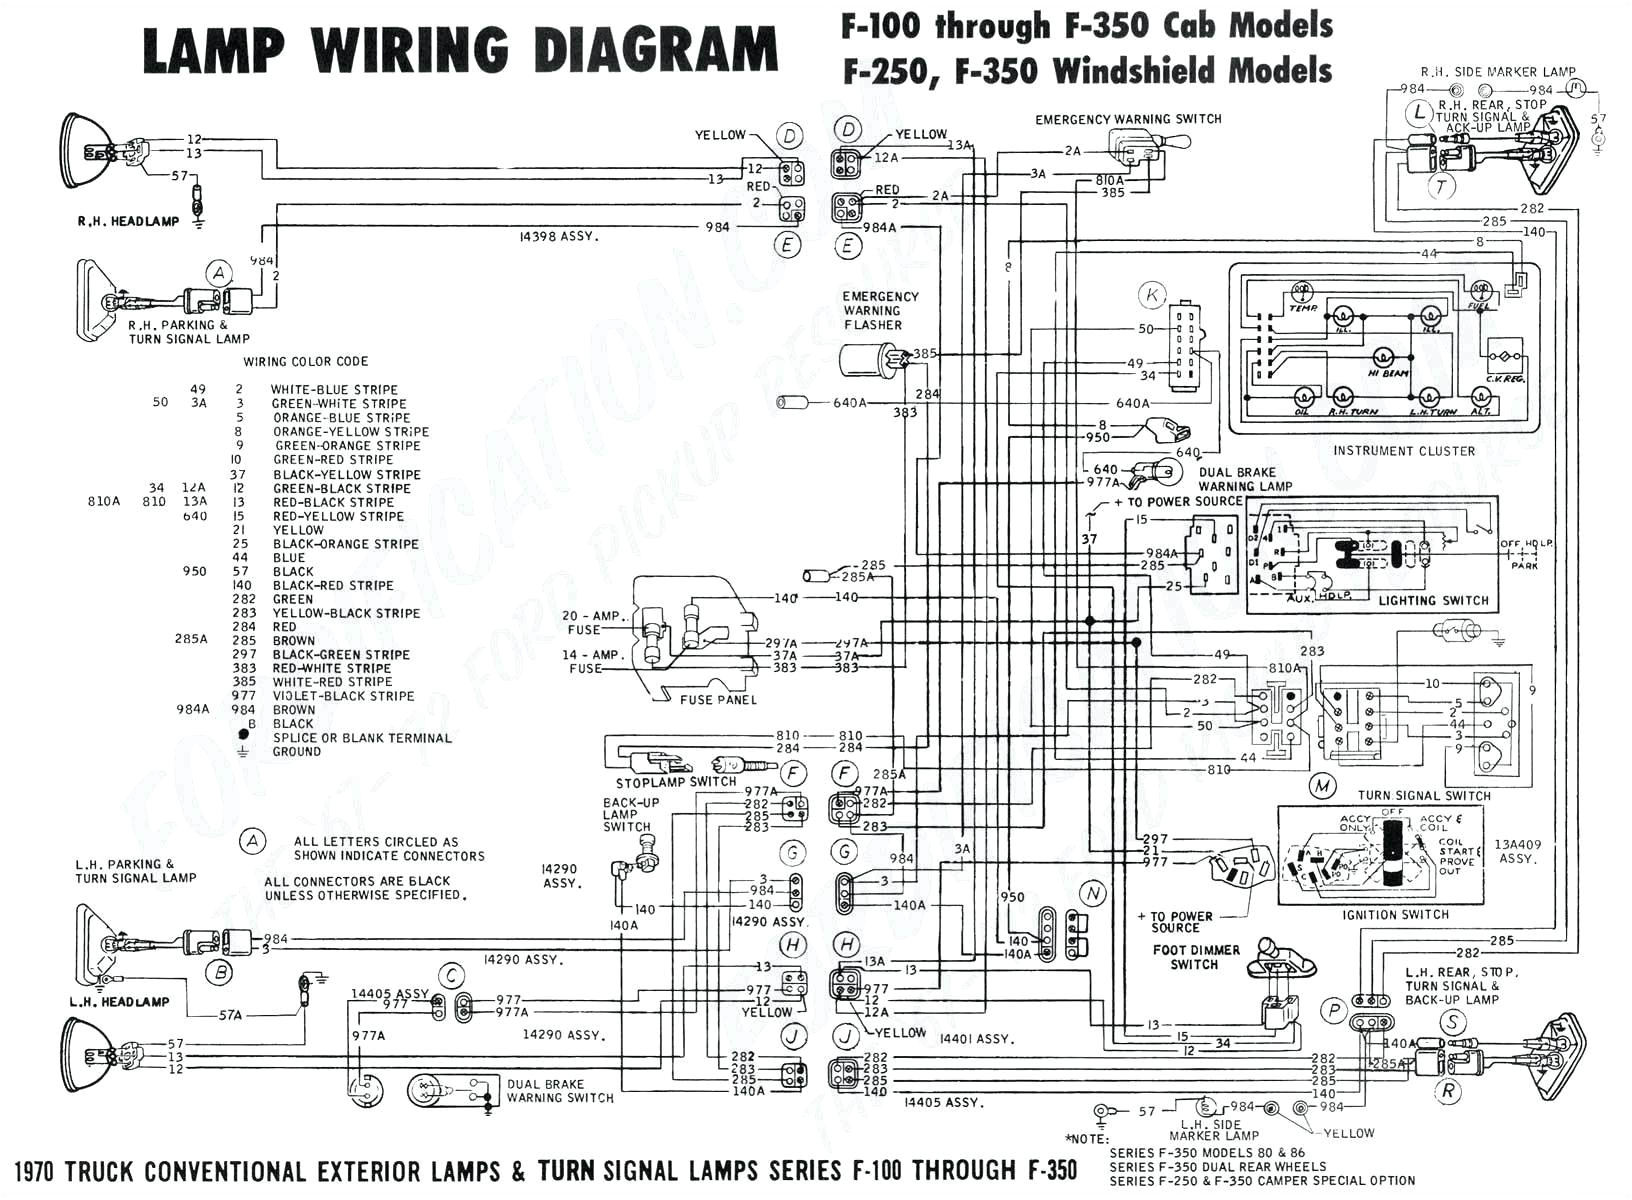 1997 Chevy S10 Stereo Wiring Diagram 1999 F 800 Wiring Diagram Pro Wiring Diagram